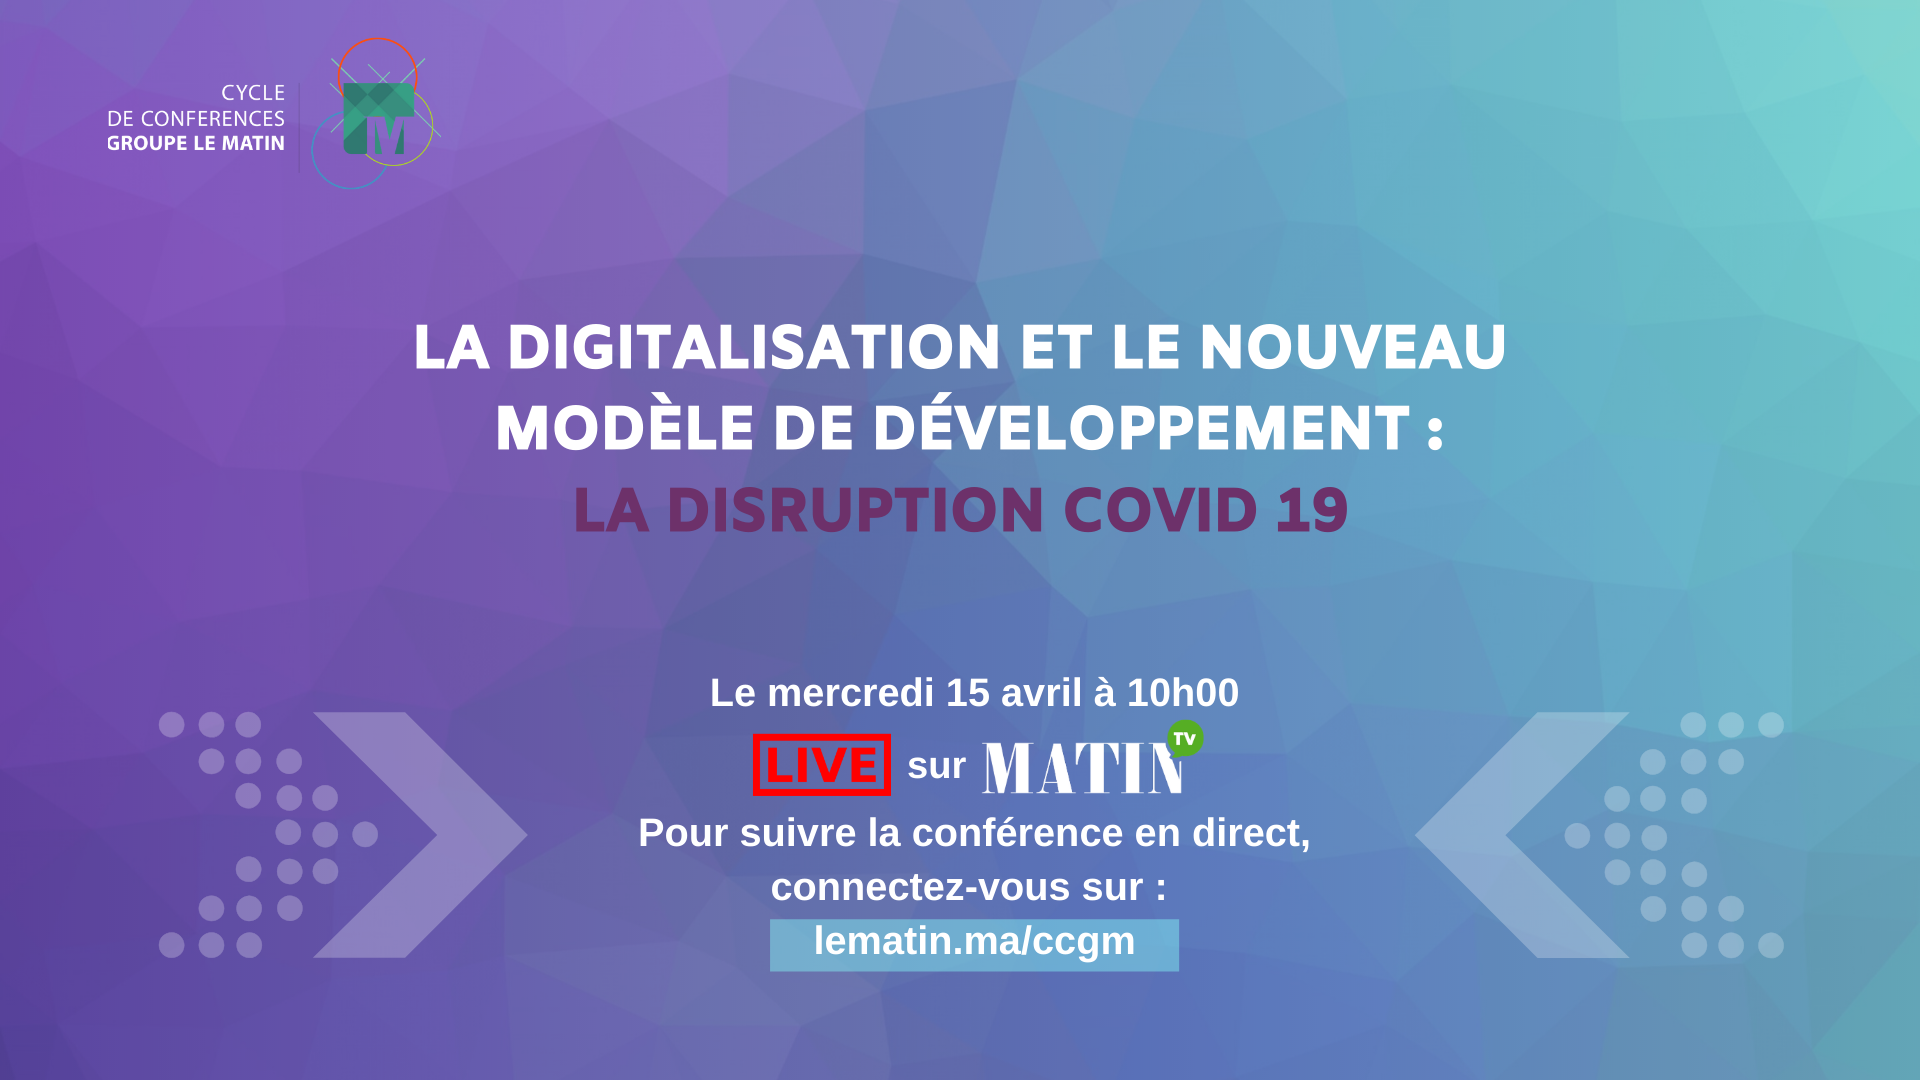 Live : Digitalisation et NMD, la disruption Covid19, en débat